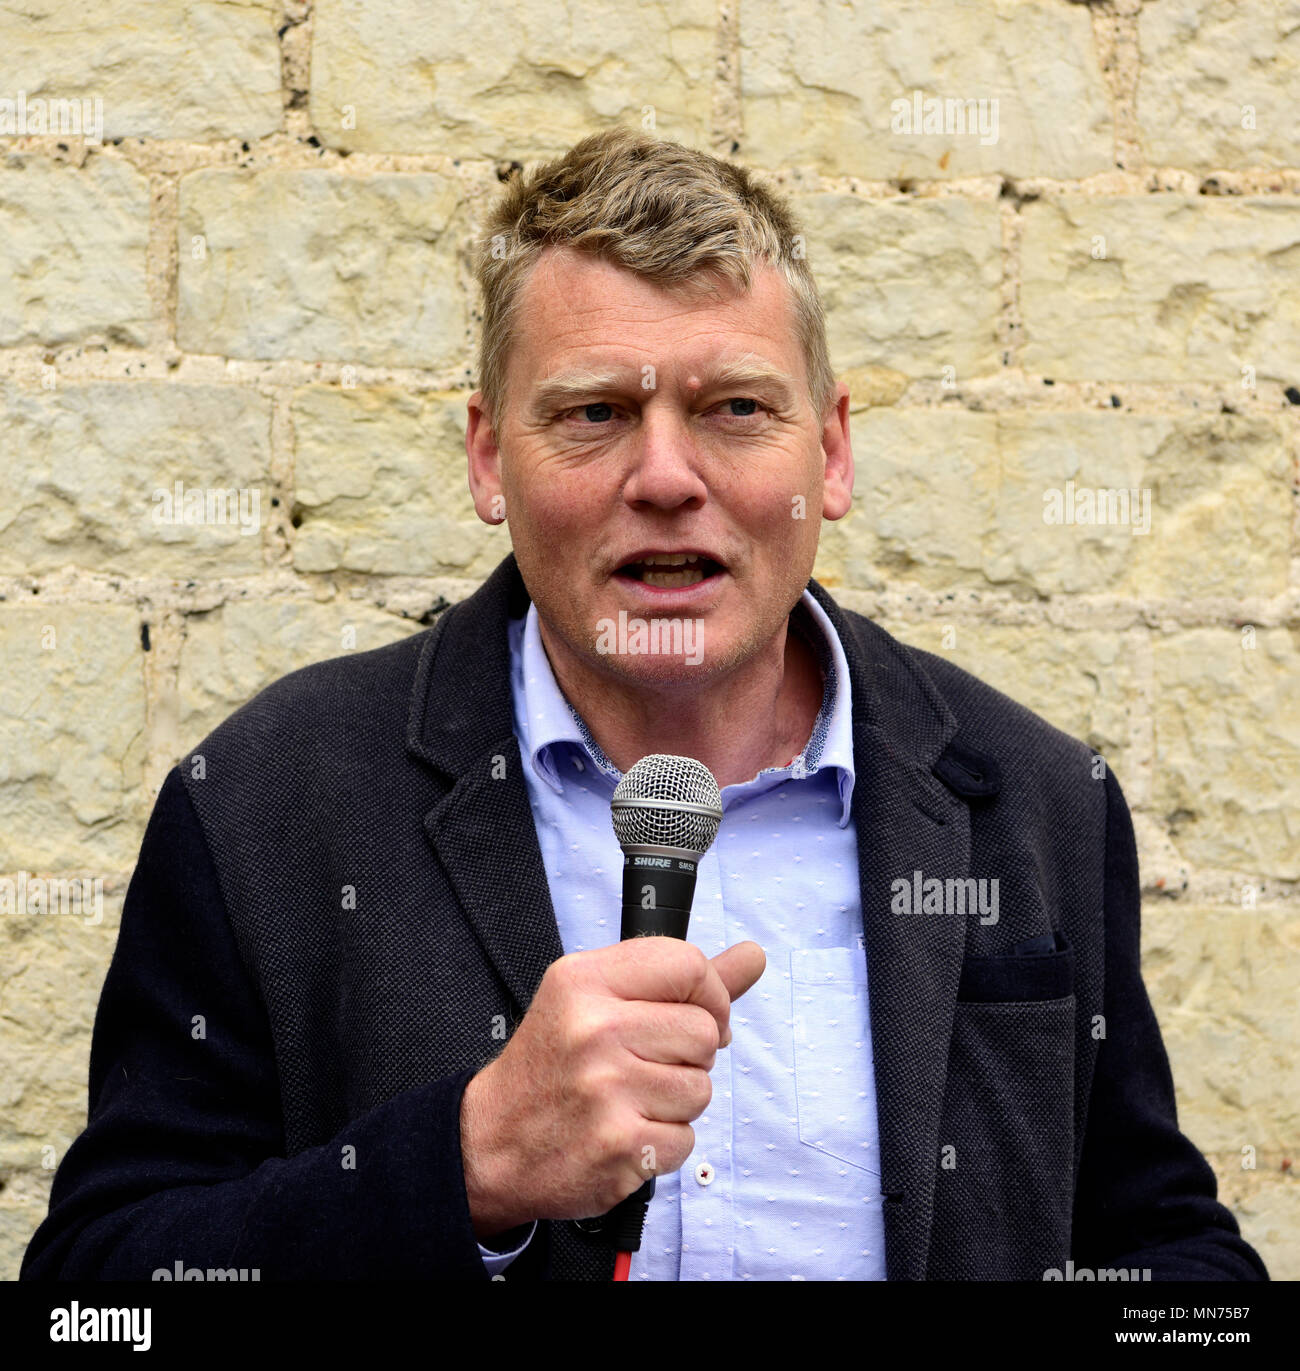 BBC television & radio reporter & presenter Tom Heap (born 6 January 1966) best known for the BBCs Countryfile, speaking at the re-opening of... - Stock Image